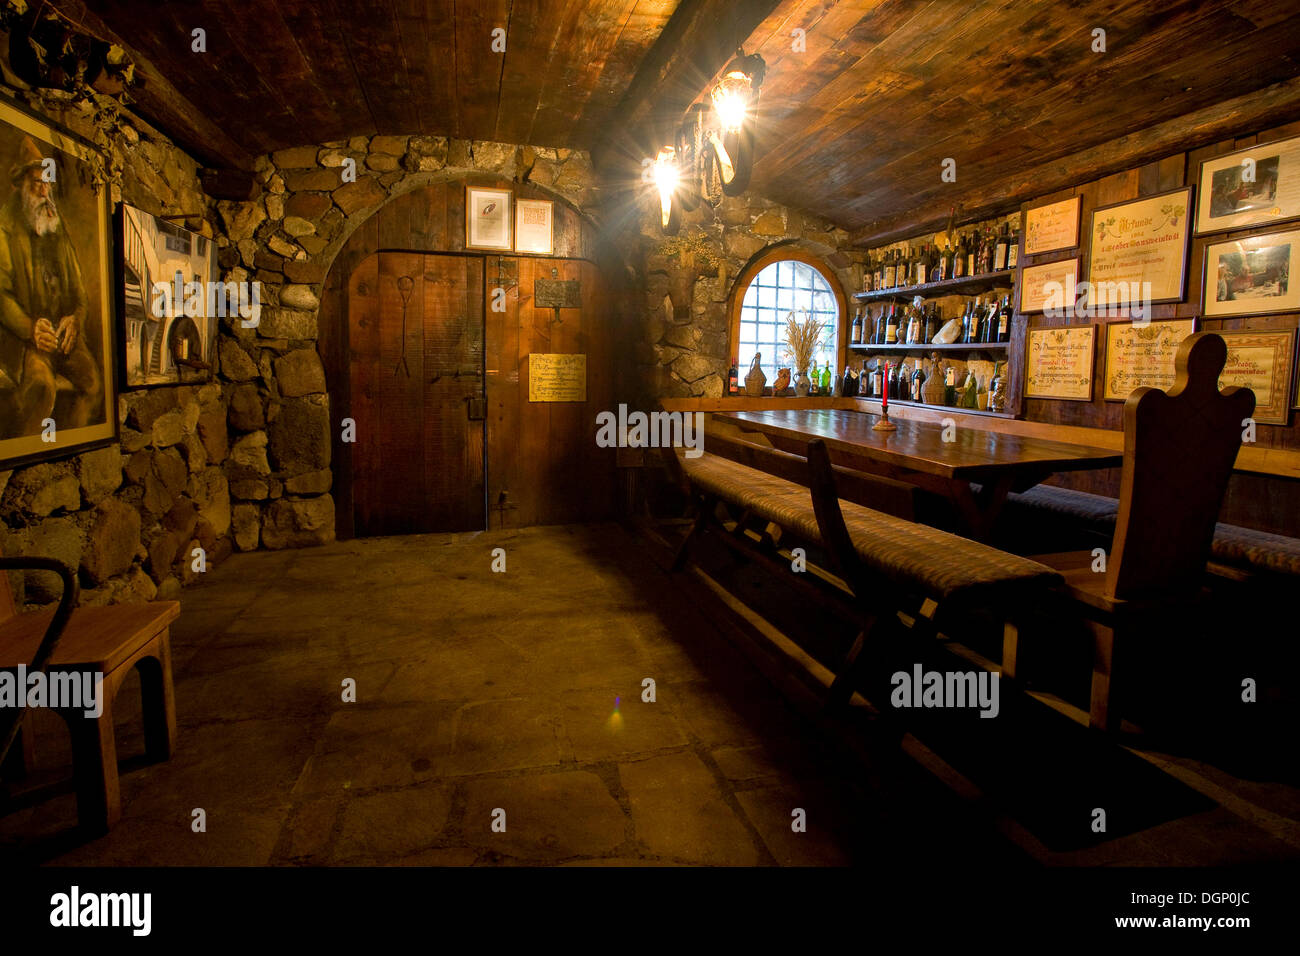 Table, benches and chairs in a wine cellar Stock Photo: 61949060 - Alamy